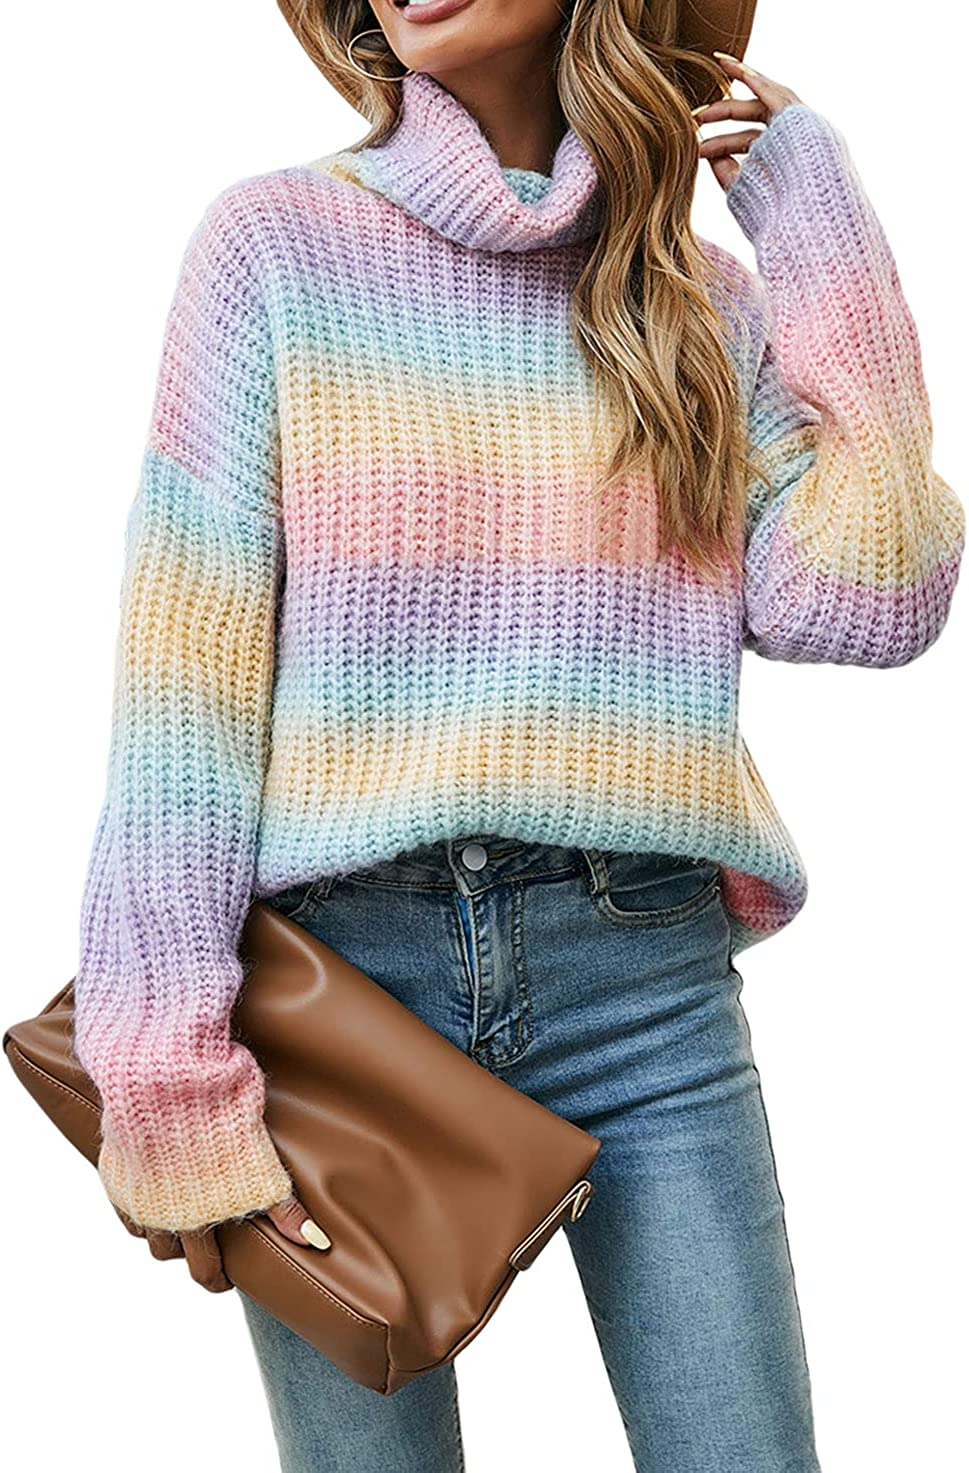 CHARTOU Women's Chunky Turtleneck Knit Rib Rainbow Gradient Color Sweater Jumper Pullover